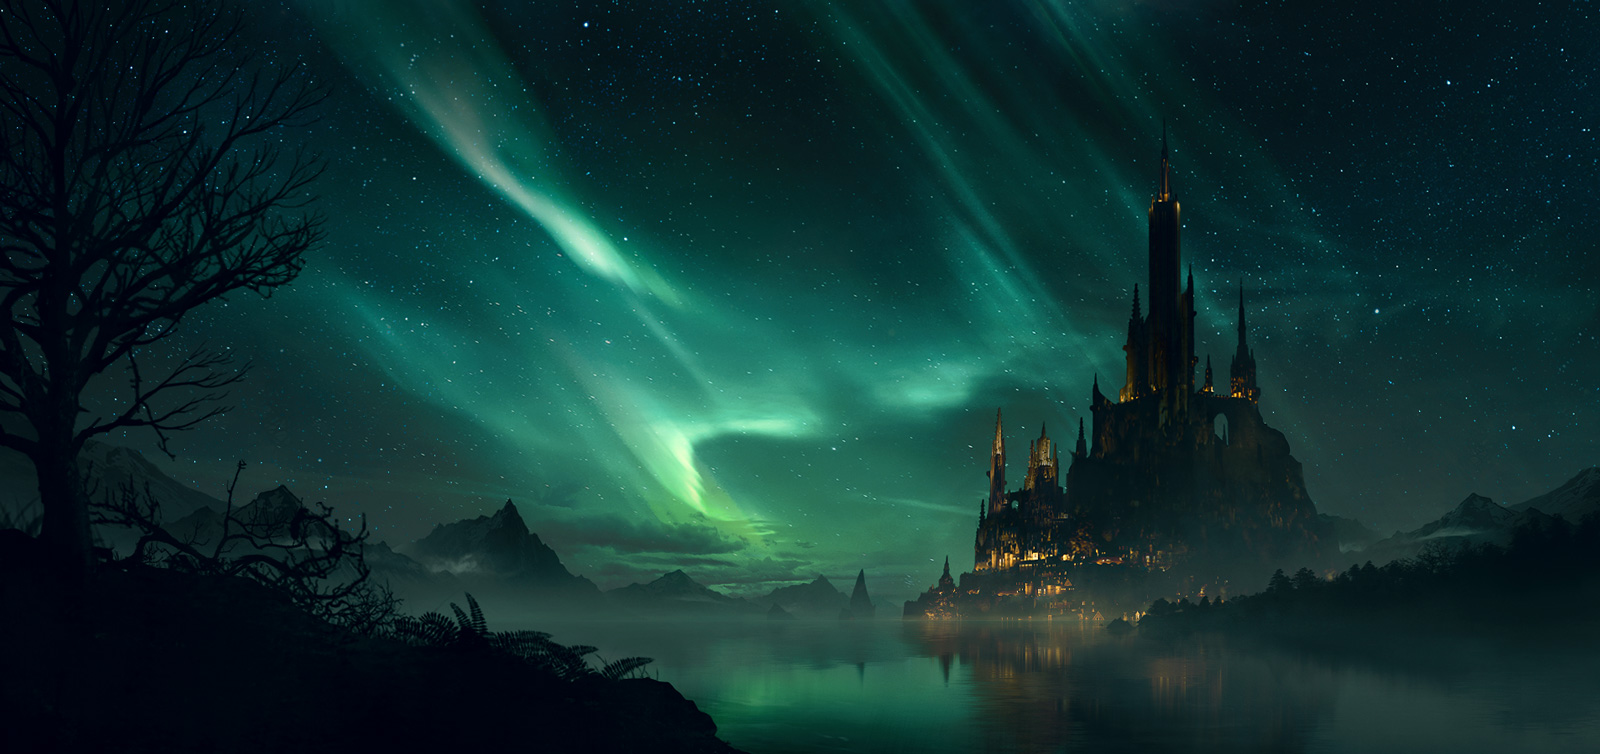 The Northern Citadel by tobylewin